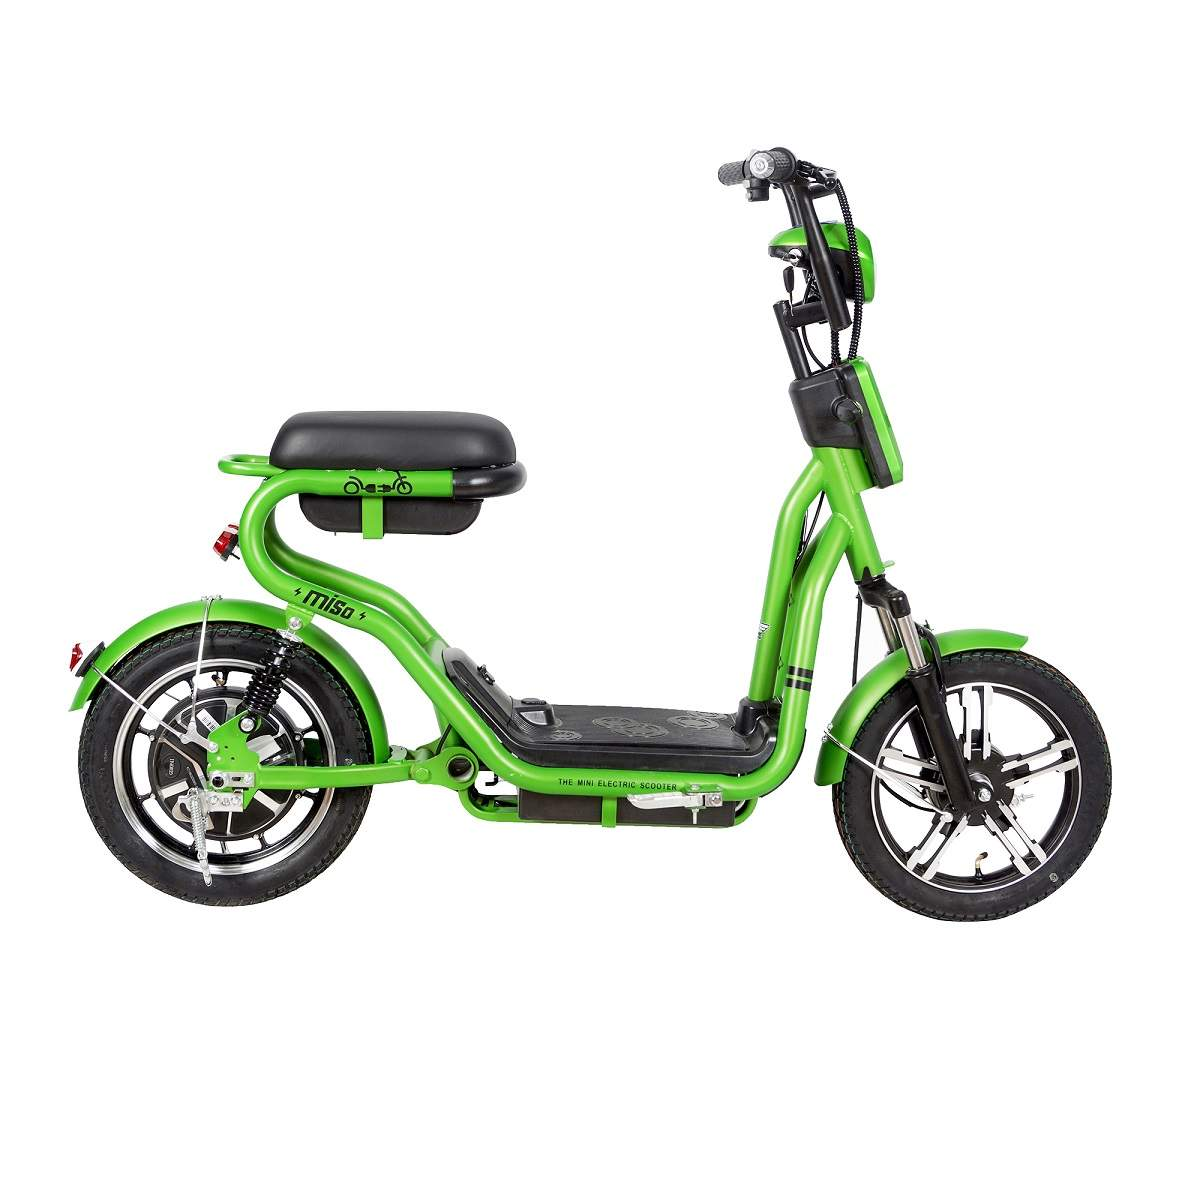 Gemopai Miso Gemopai Electric Launches Miso Electric Scooter Priced At Rs 44 000 Auto News Et Auto